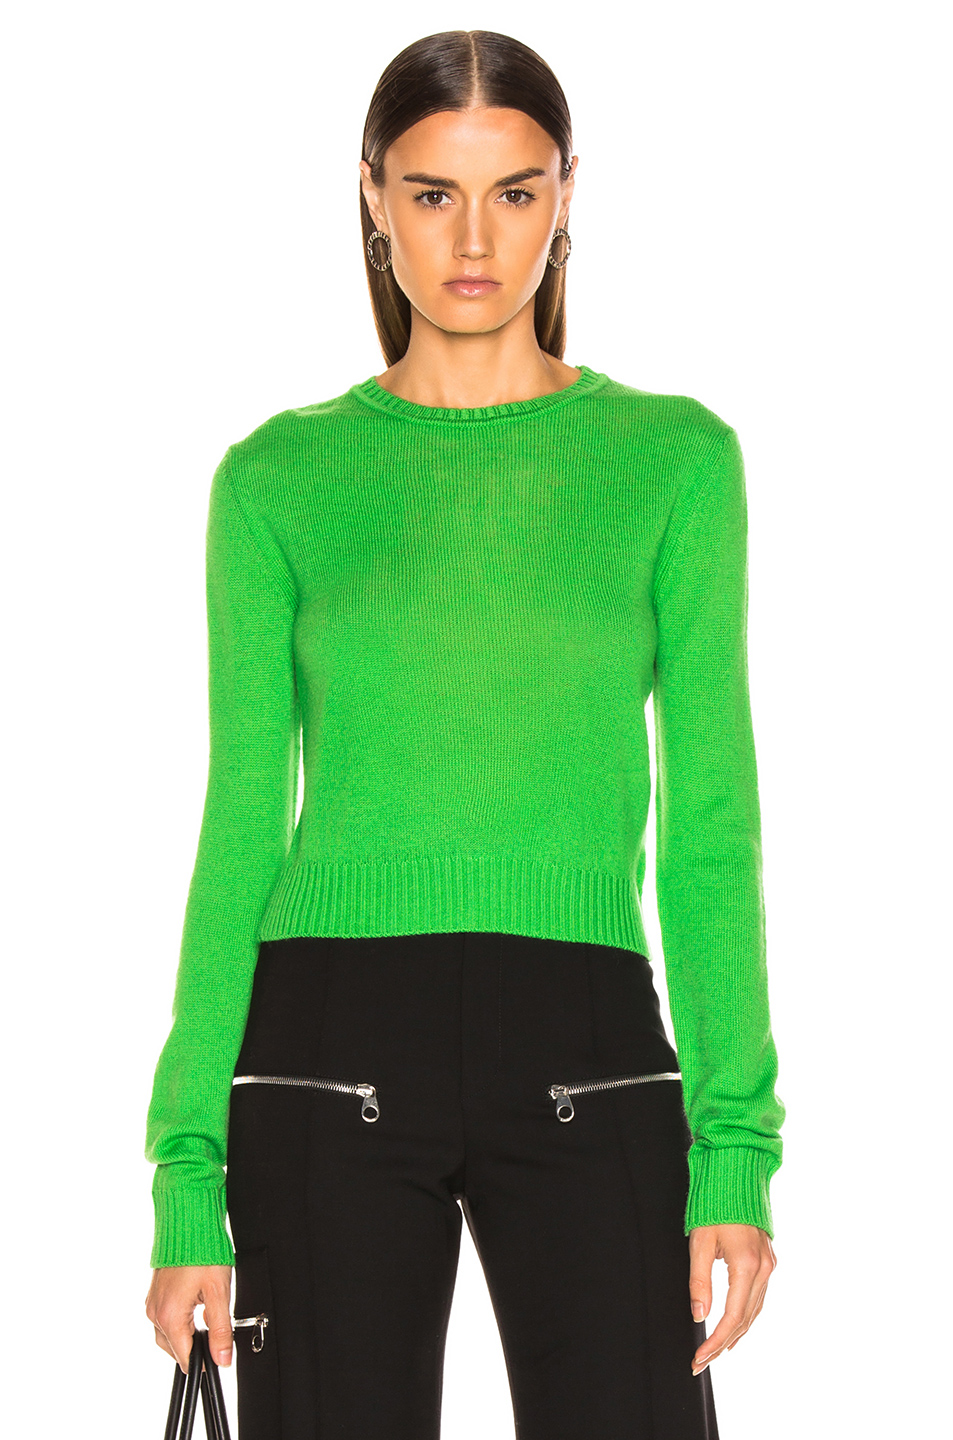 Jil Sander Simple Sweater